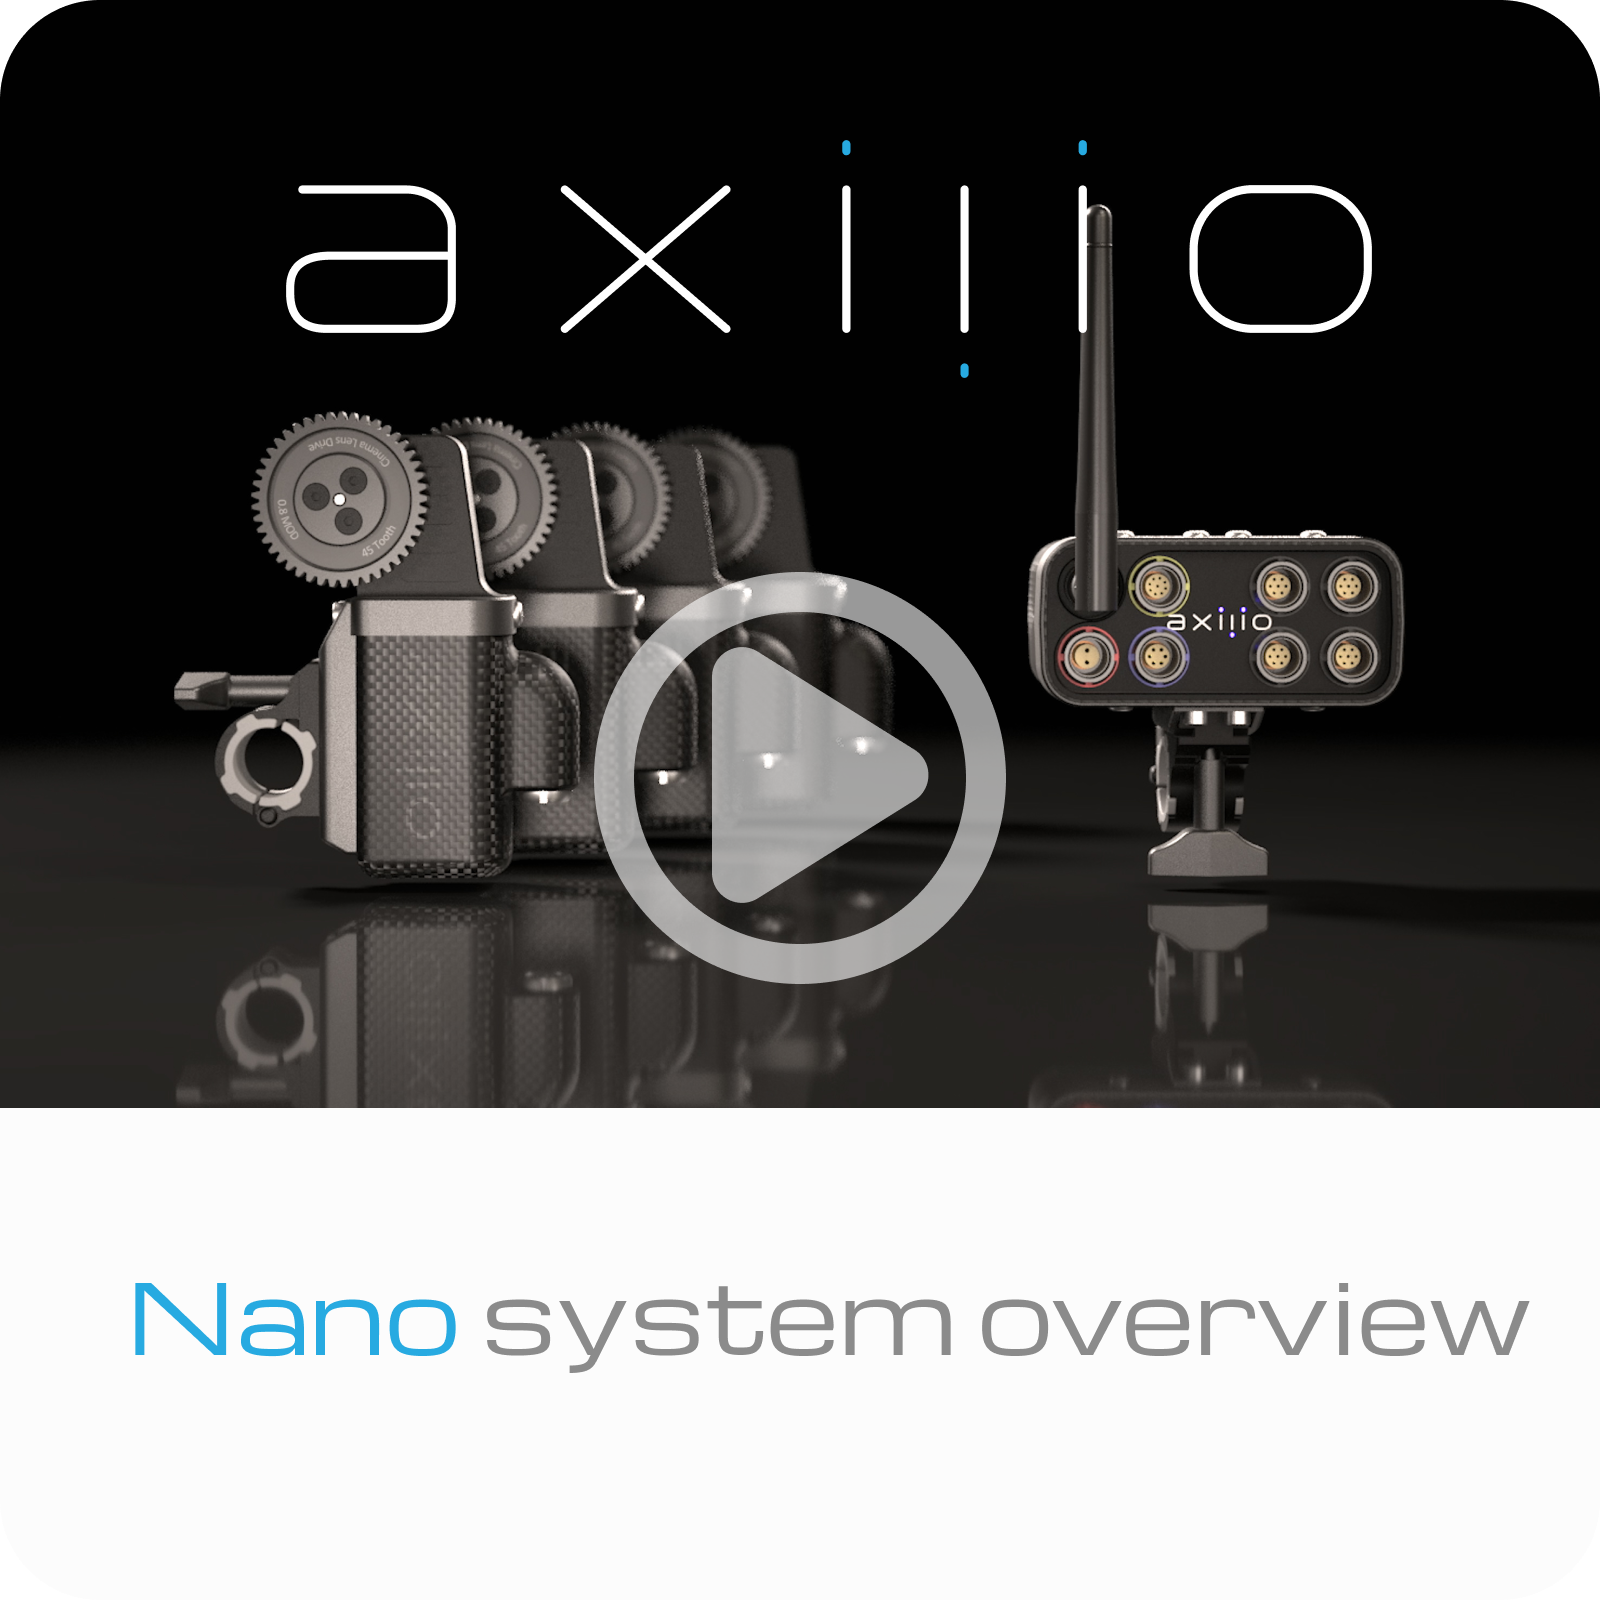 nano-overview-web-video-square-thumbnail.png